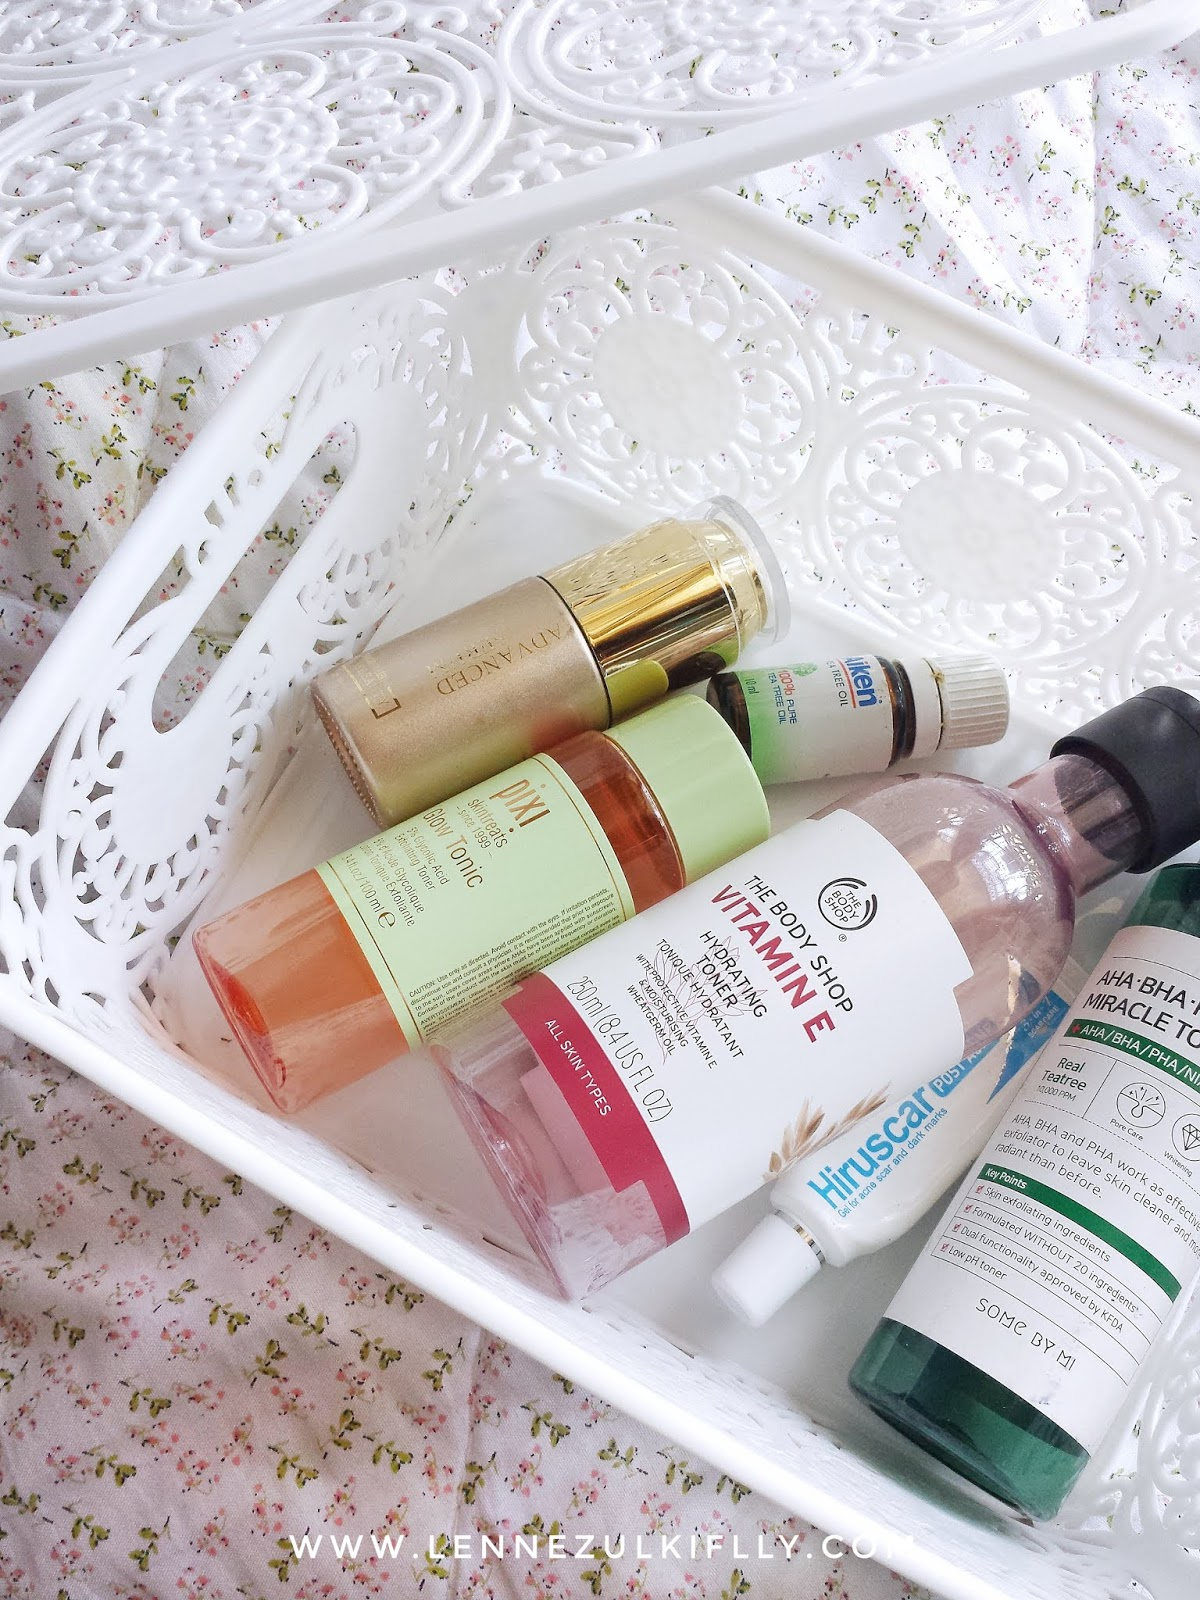 Beauty Product Empties #4 | LENNE ZULKIFLLY